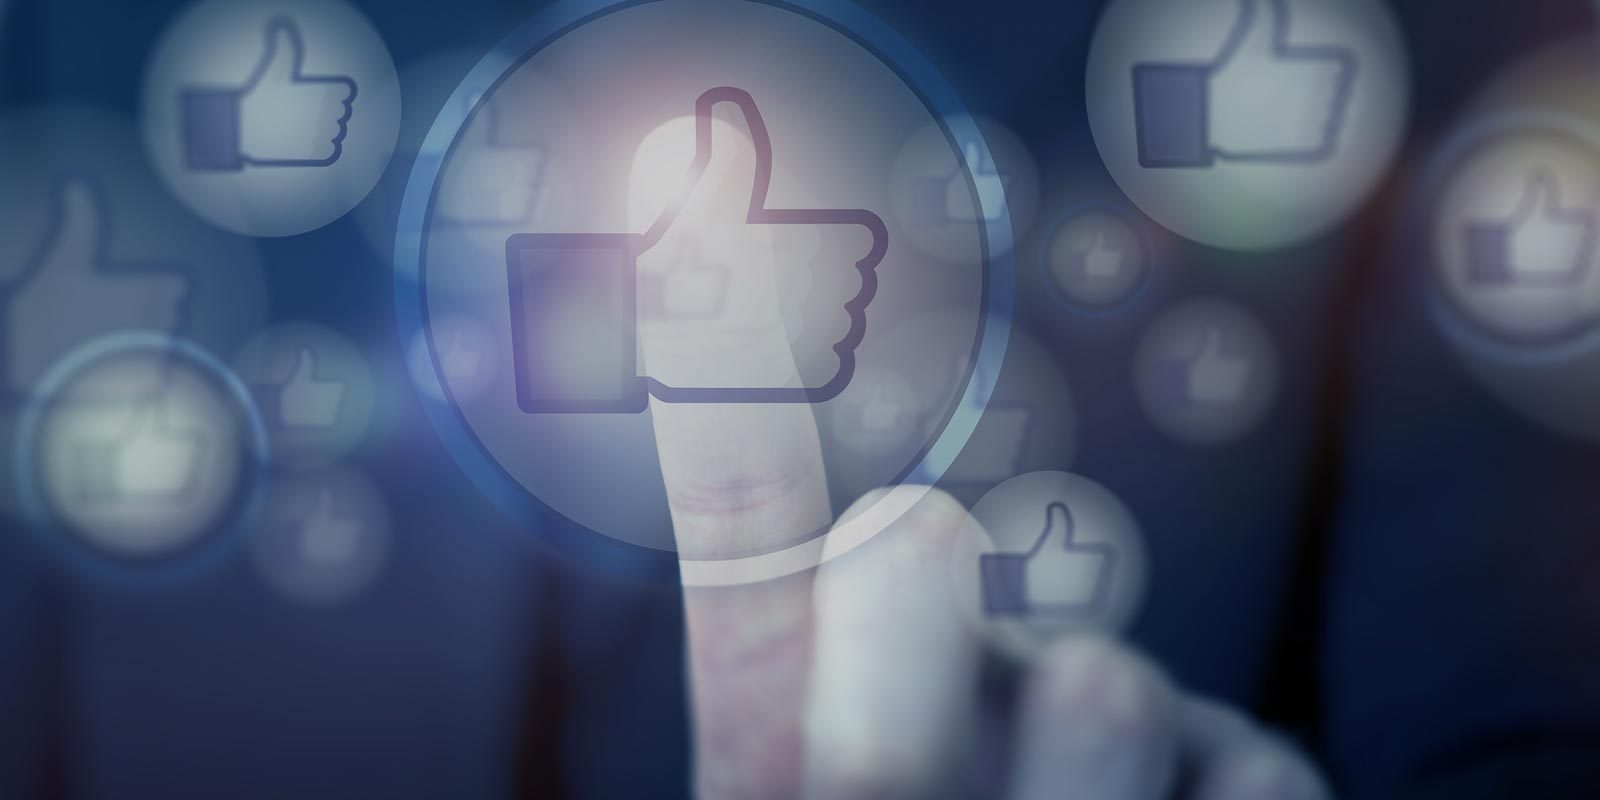 Facebook Advertising Works for Businesses